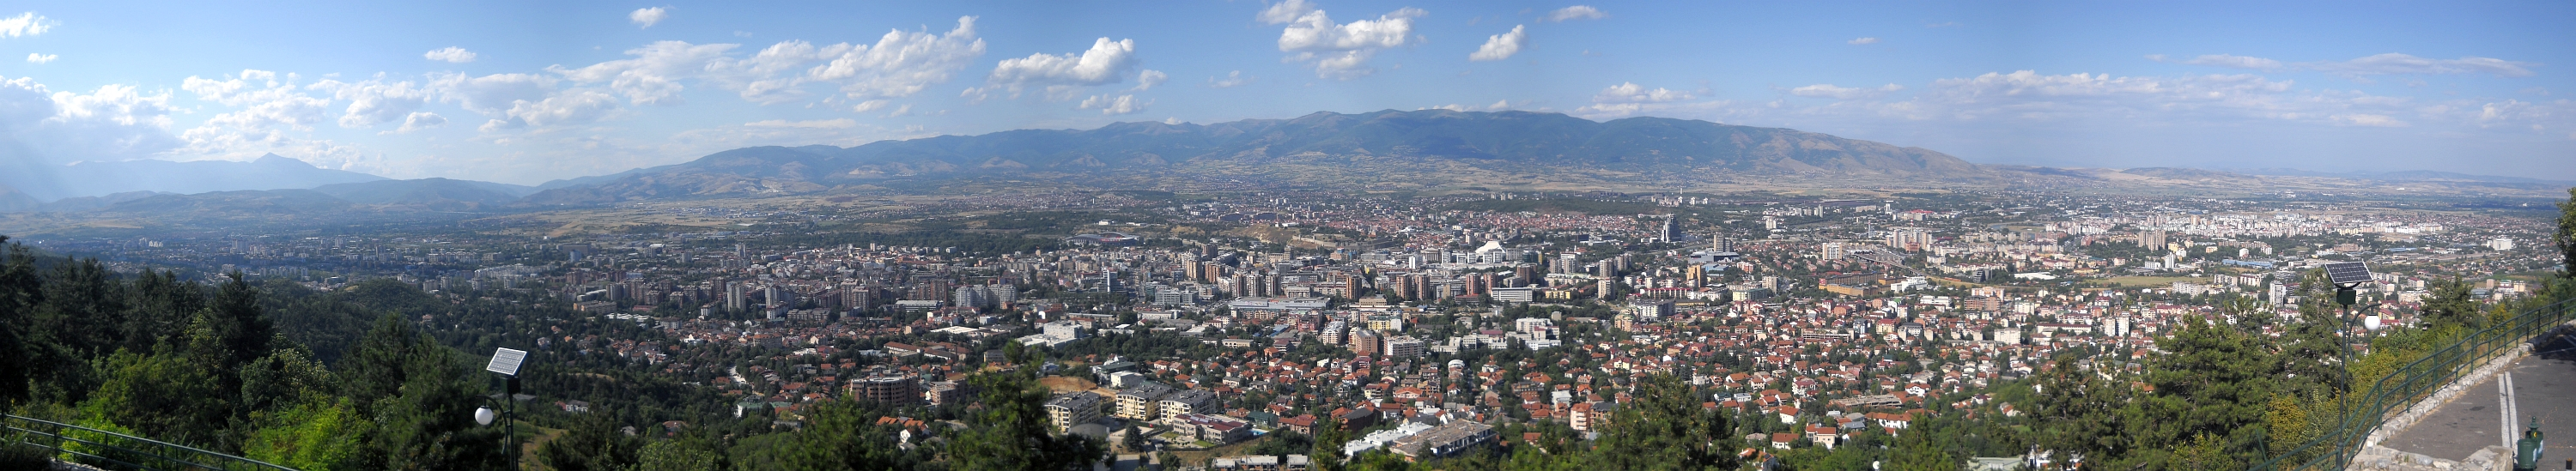 Panorama - Skopje, Macedonia